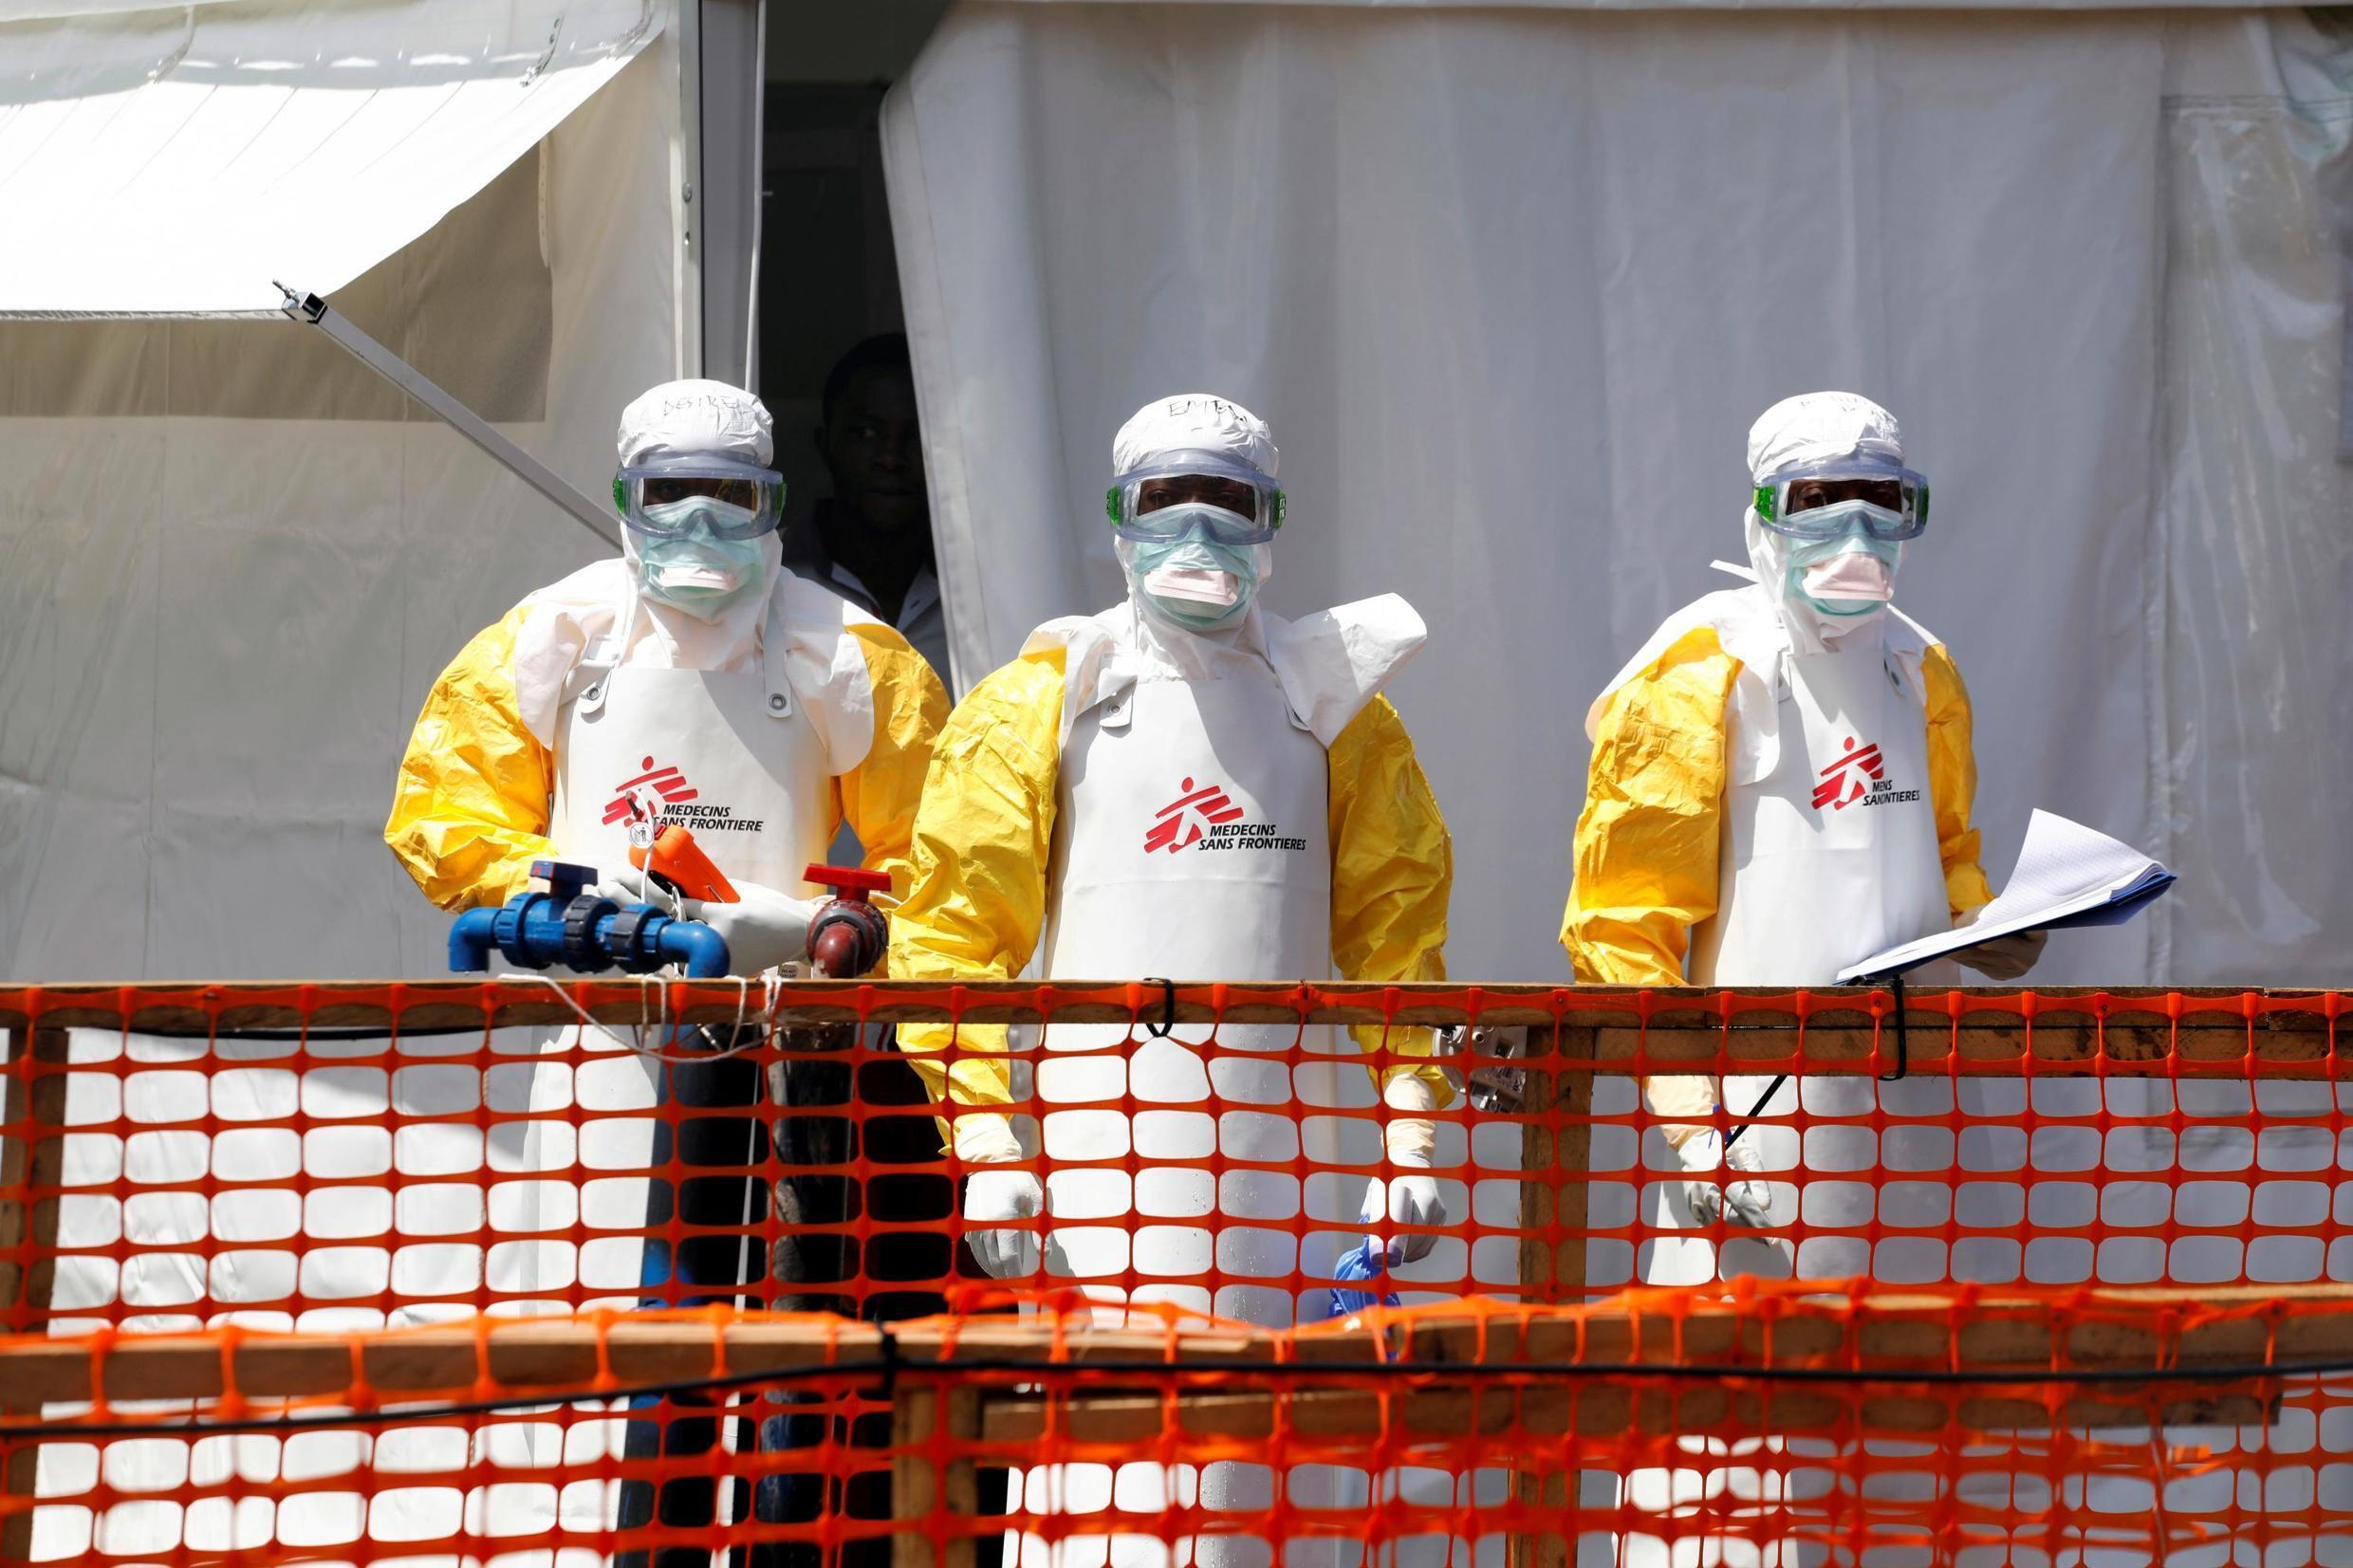 Health workers dressed in protective suits are seen at the newly constructed MSF(Doctors Without Borders) Ebola treatment centre in Goma, Democratic Republic of Congo, August 4, 2019.REUTERS/Baz Ratner